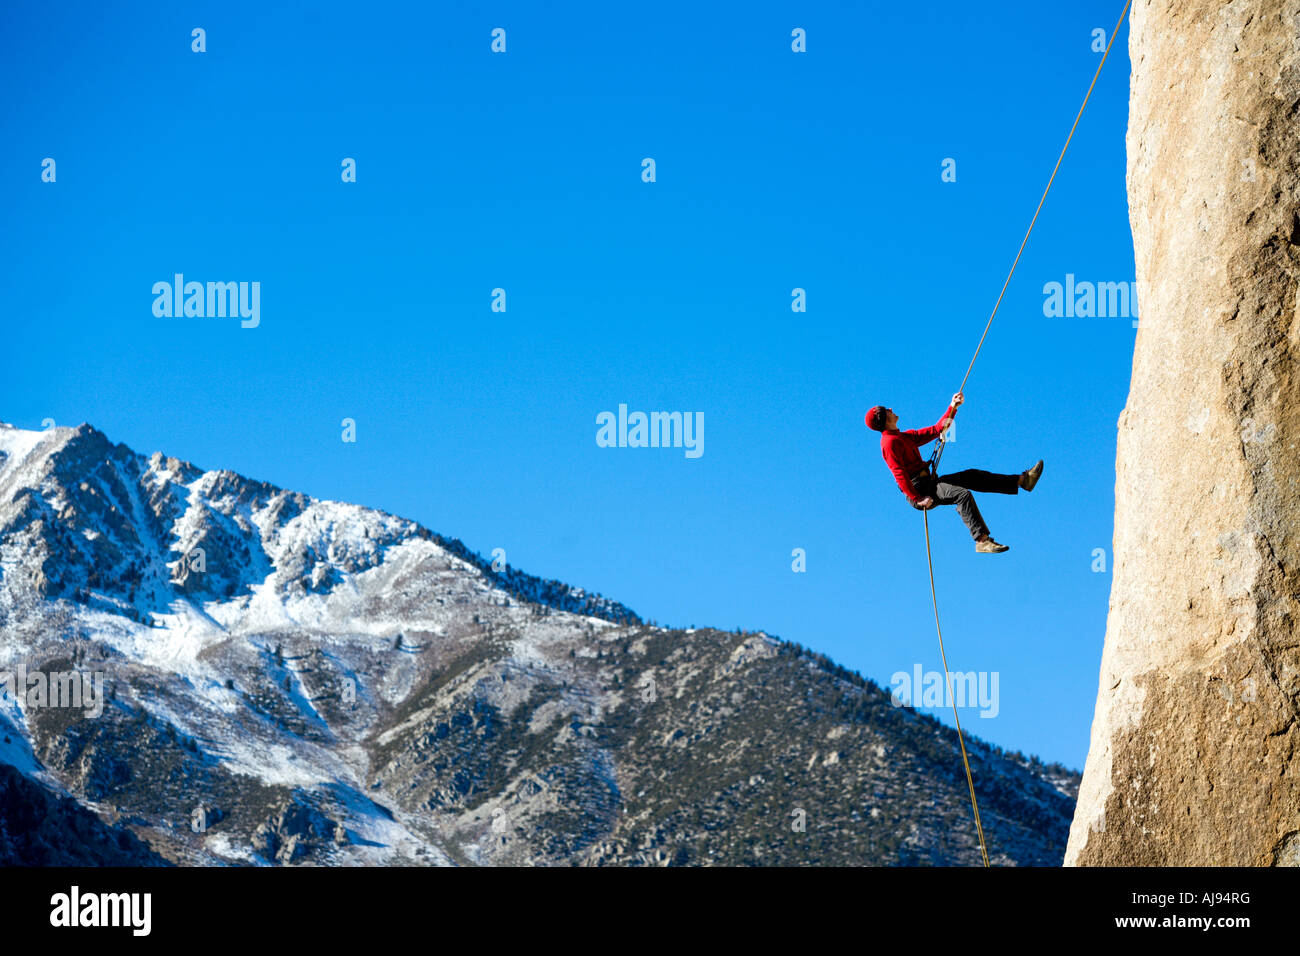 Climber rappelling down boulder - Stock Image